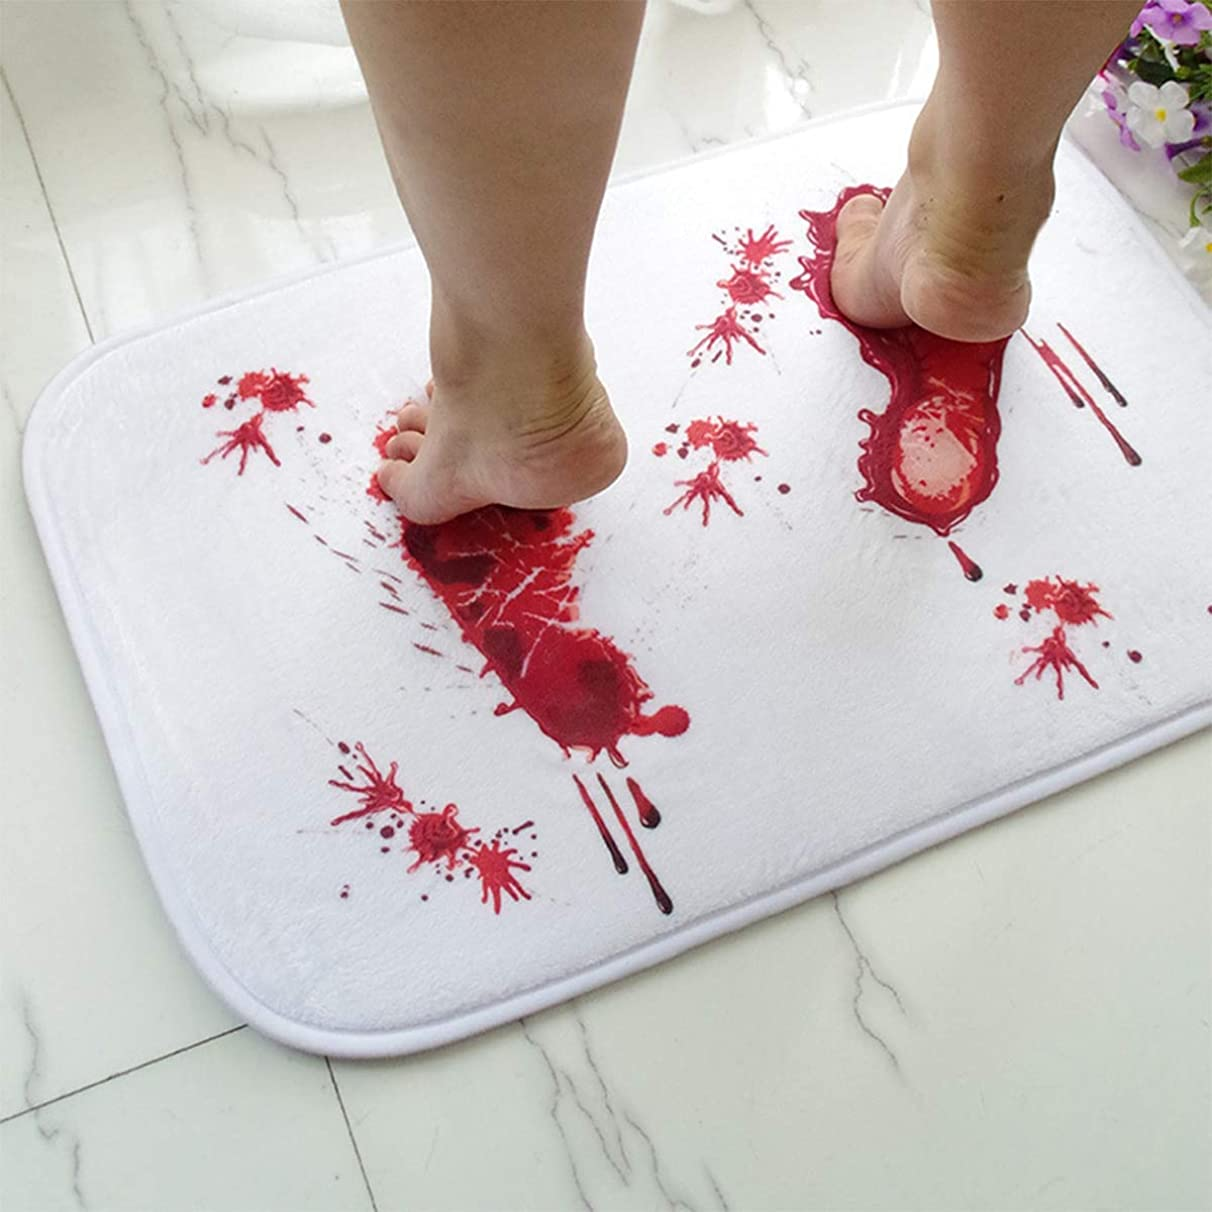 Bath Mats - Footprint Blood Bath Mat Bloody Shower Non Slip Floor Carpet 40x60cm - Friendly Pattern Lavender Turquoise Mold Reglazed Quick Theme Plush Curtain Sets Backing Cloth Ivory Oval Sizes